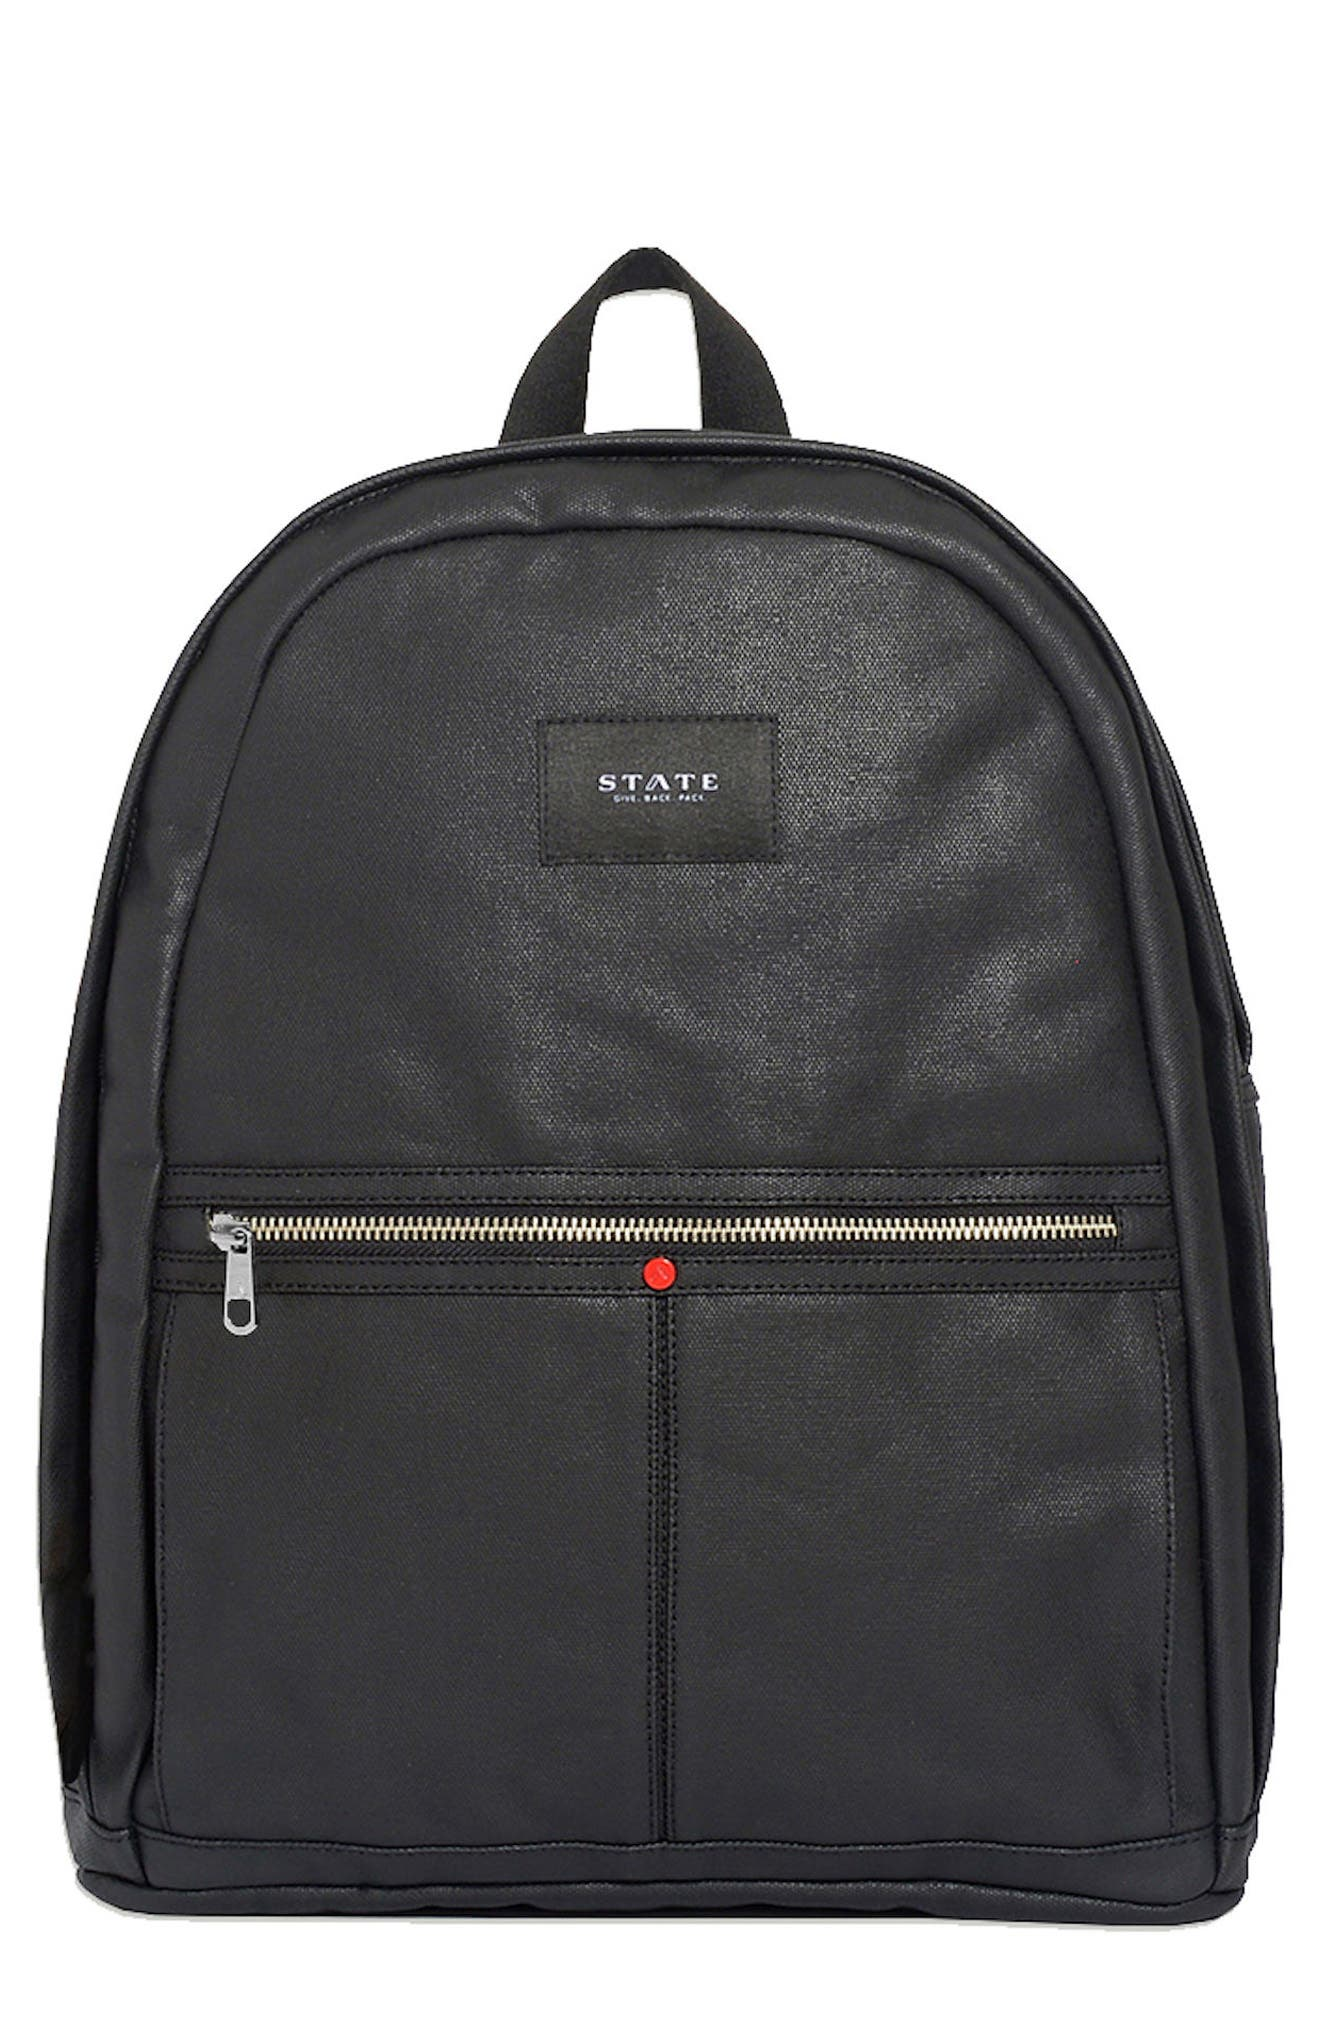 Greenpoint Kent Backpack,                         Main,                         color,